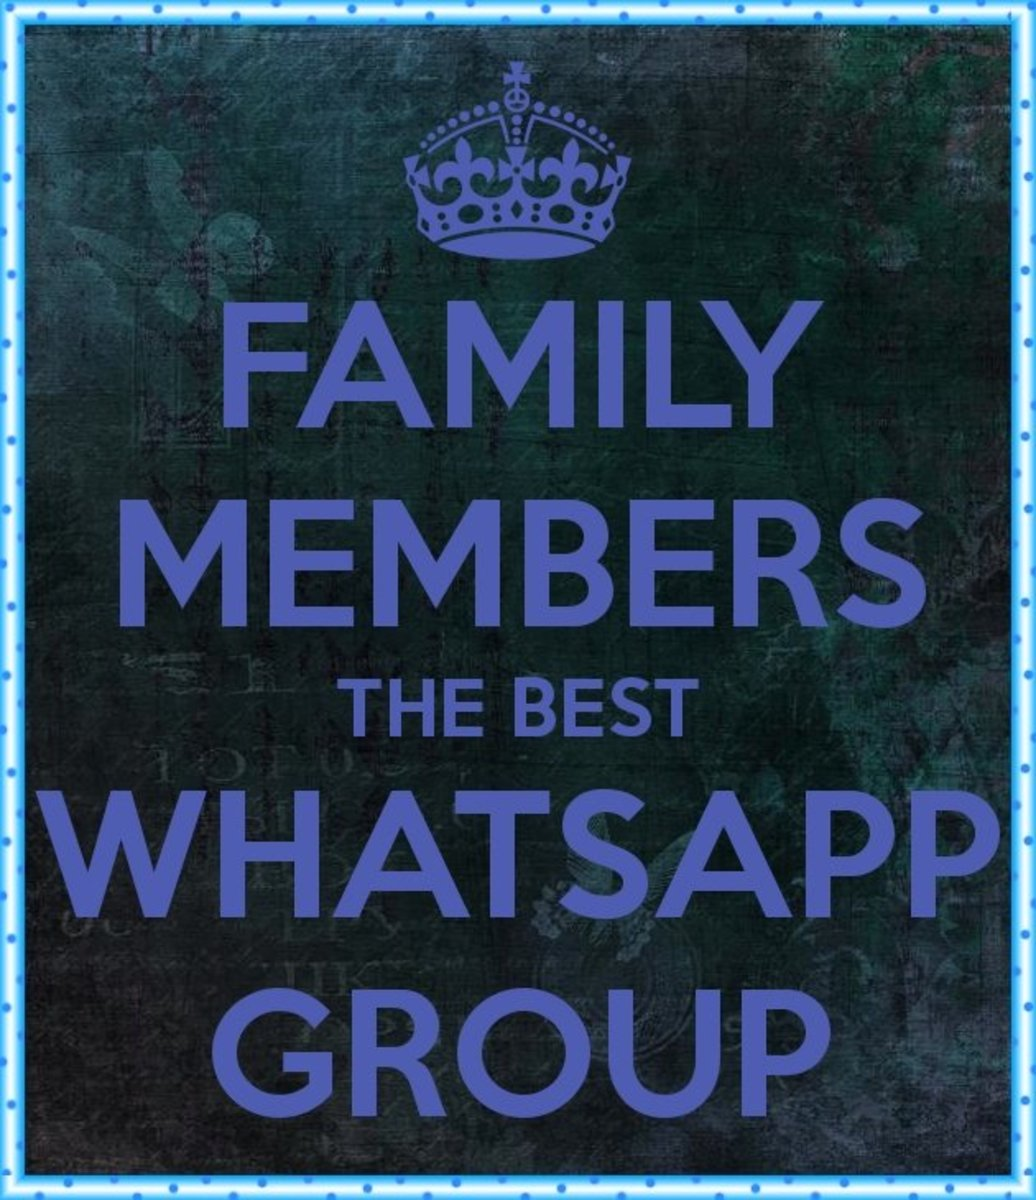 Funny Whatsapp Group Names for Family Friends